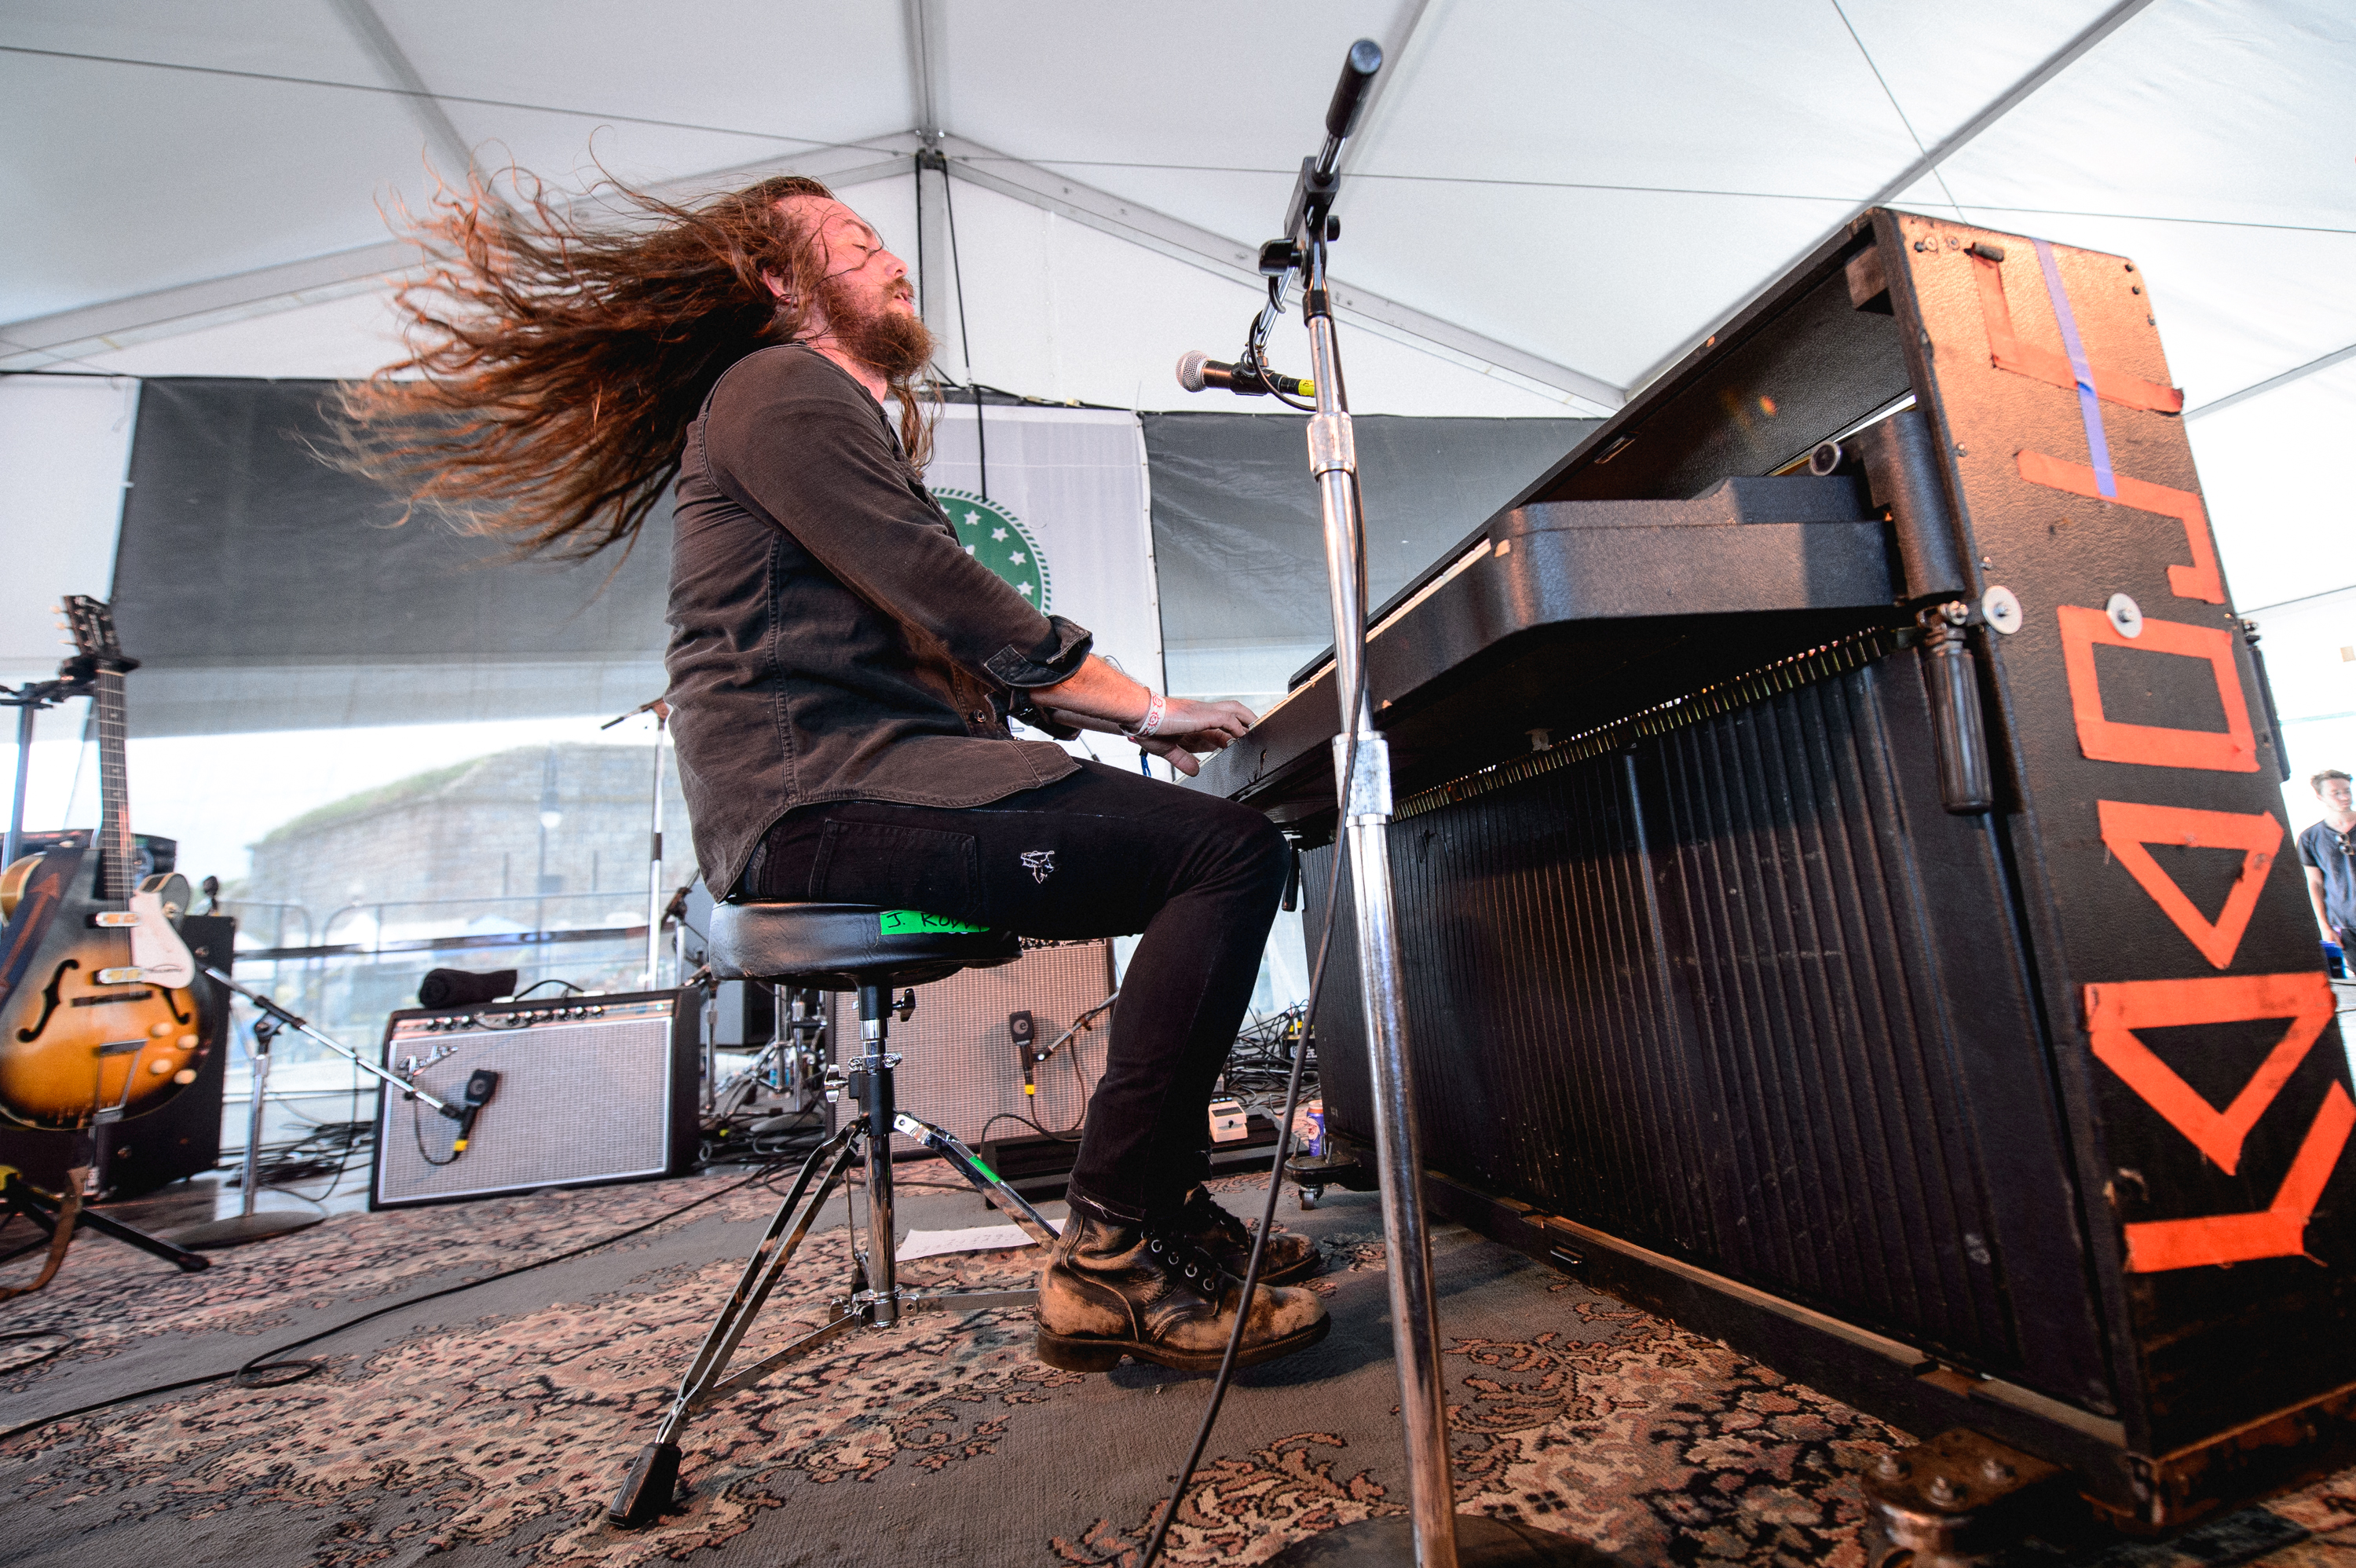 """This is folk music. You gotta get sweaty!"" -- J. Roddy Walston & The Business"